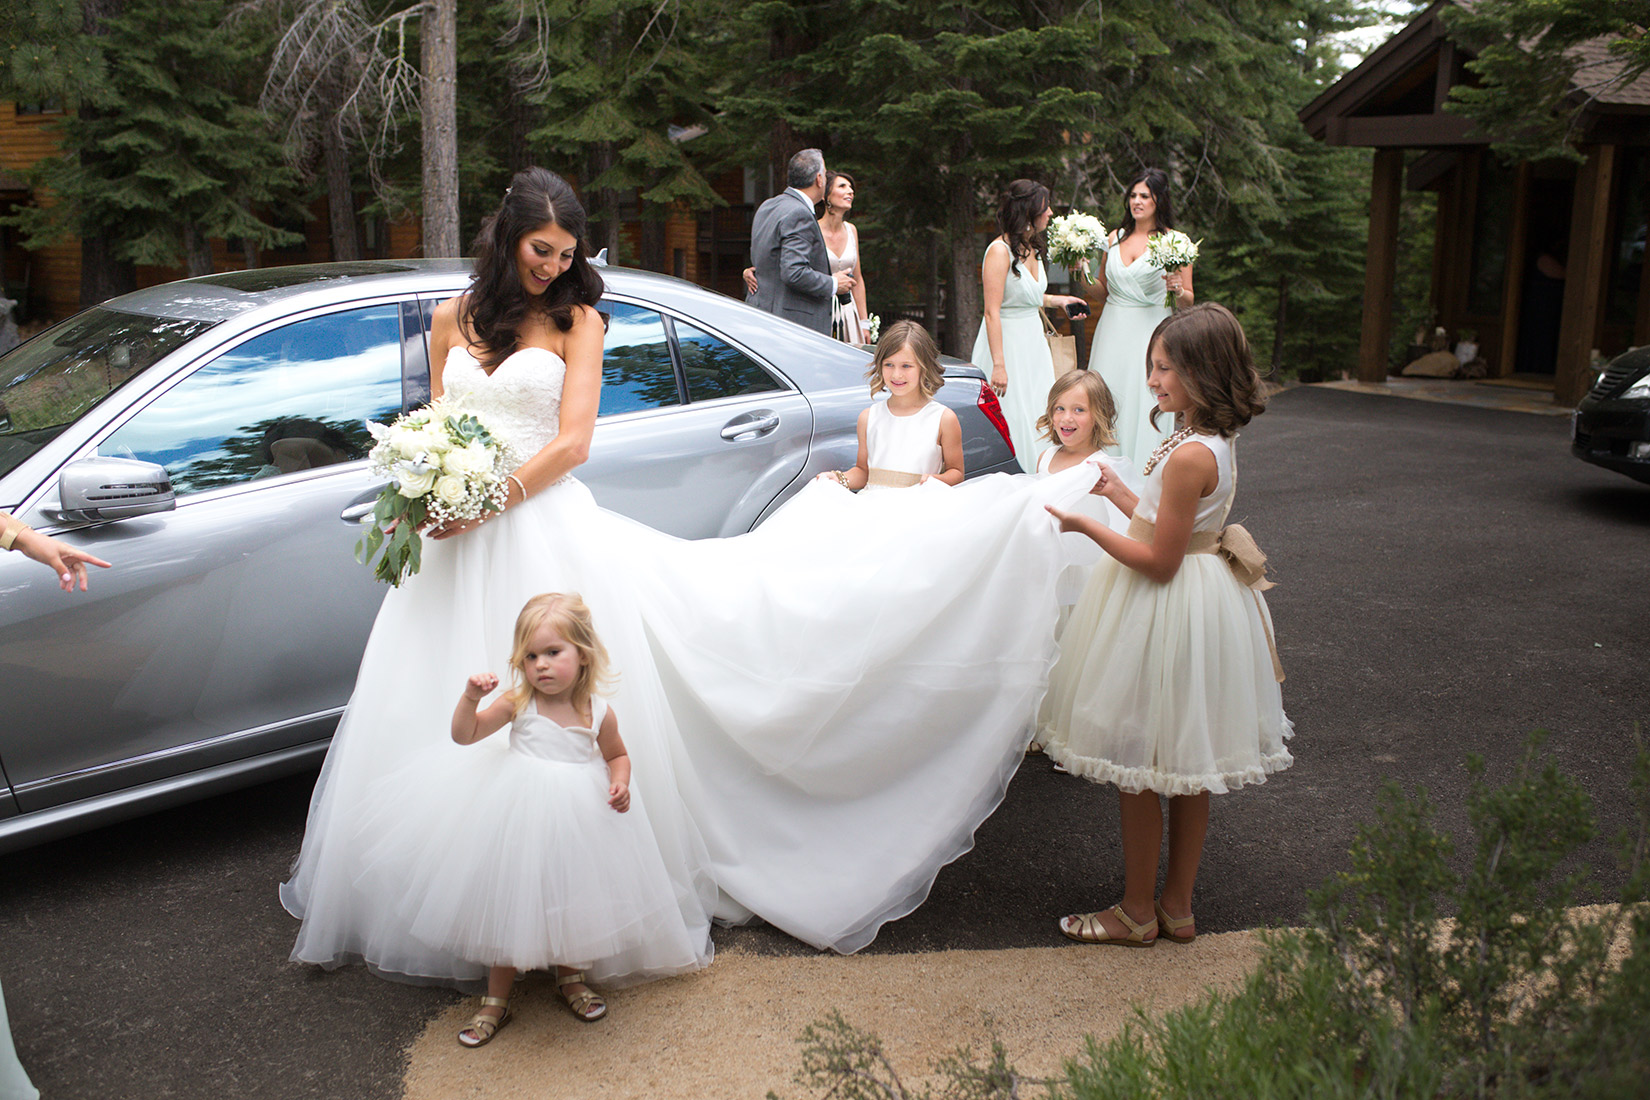 Tahoe-Ritz-flower-girls-and-bride